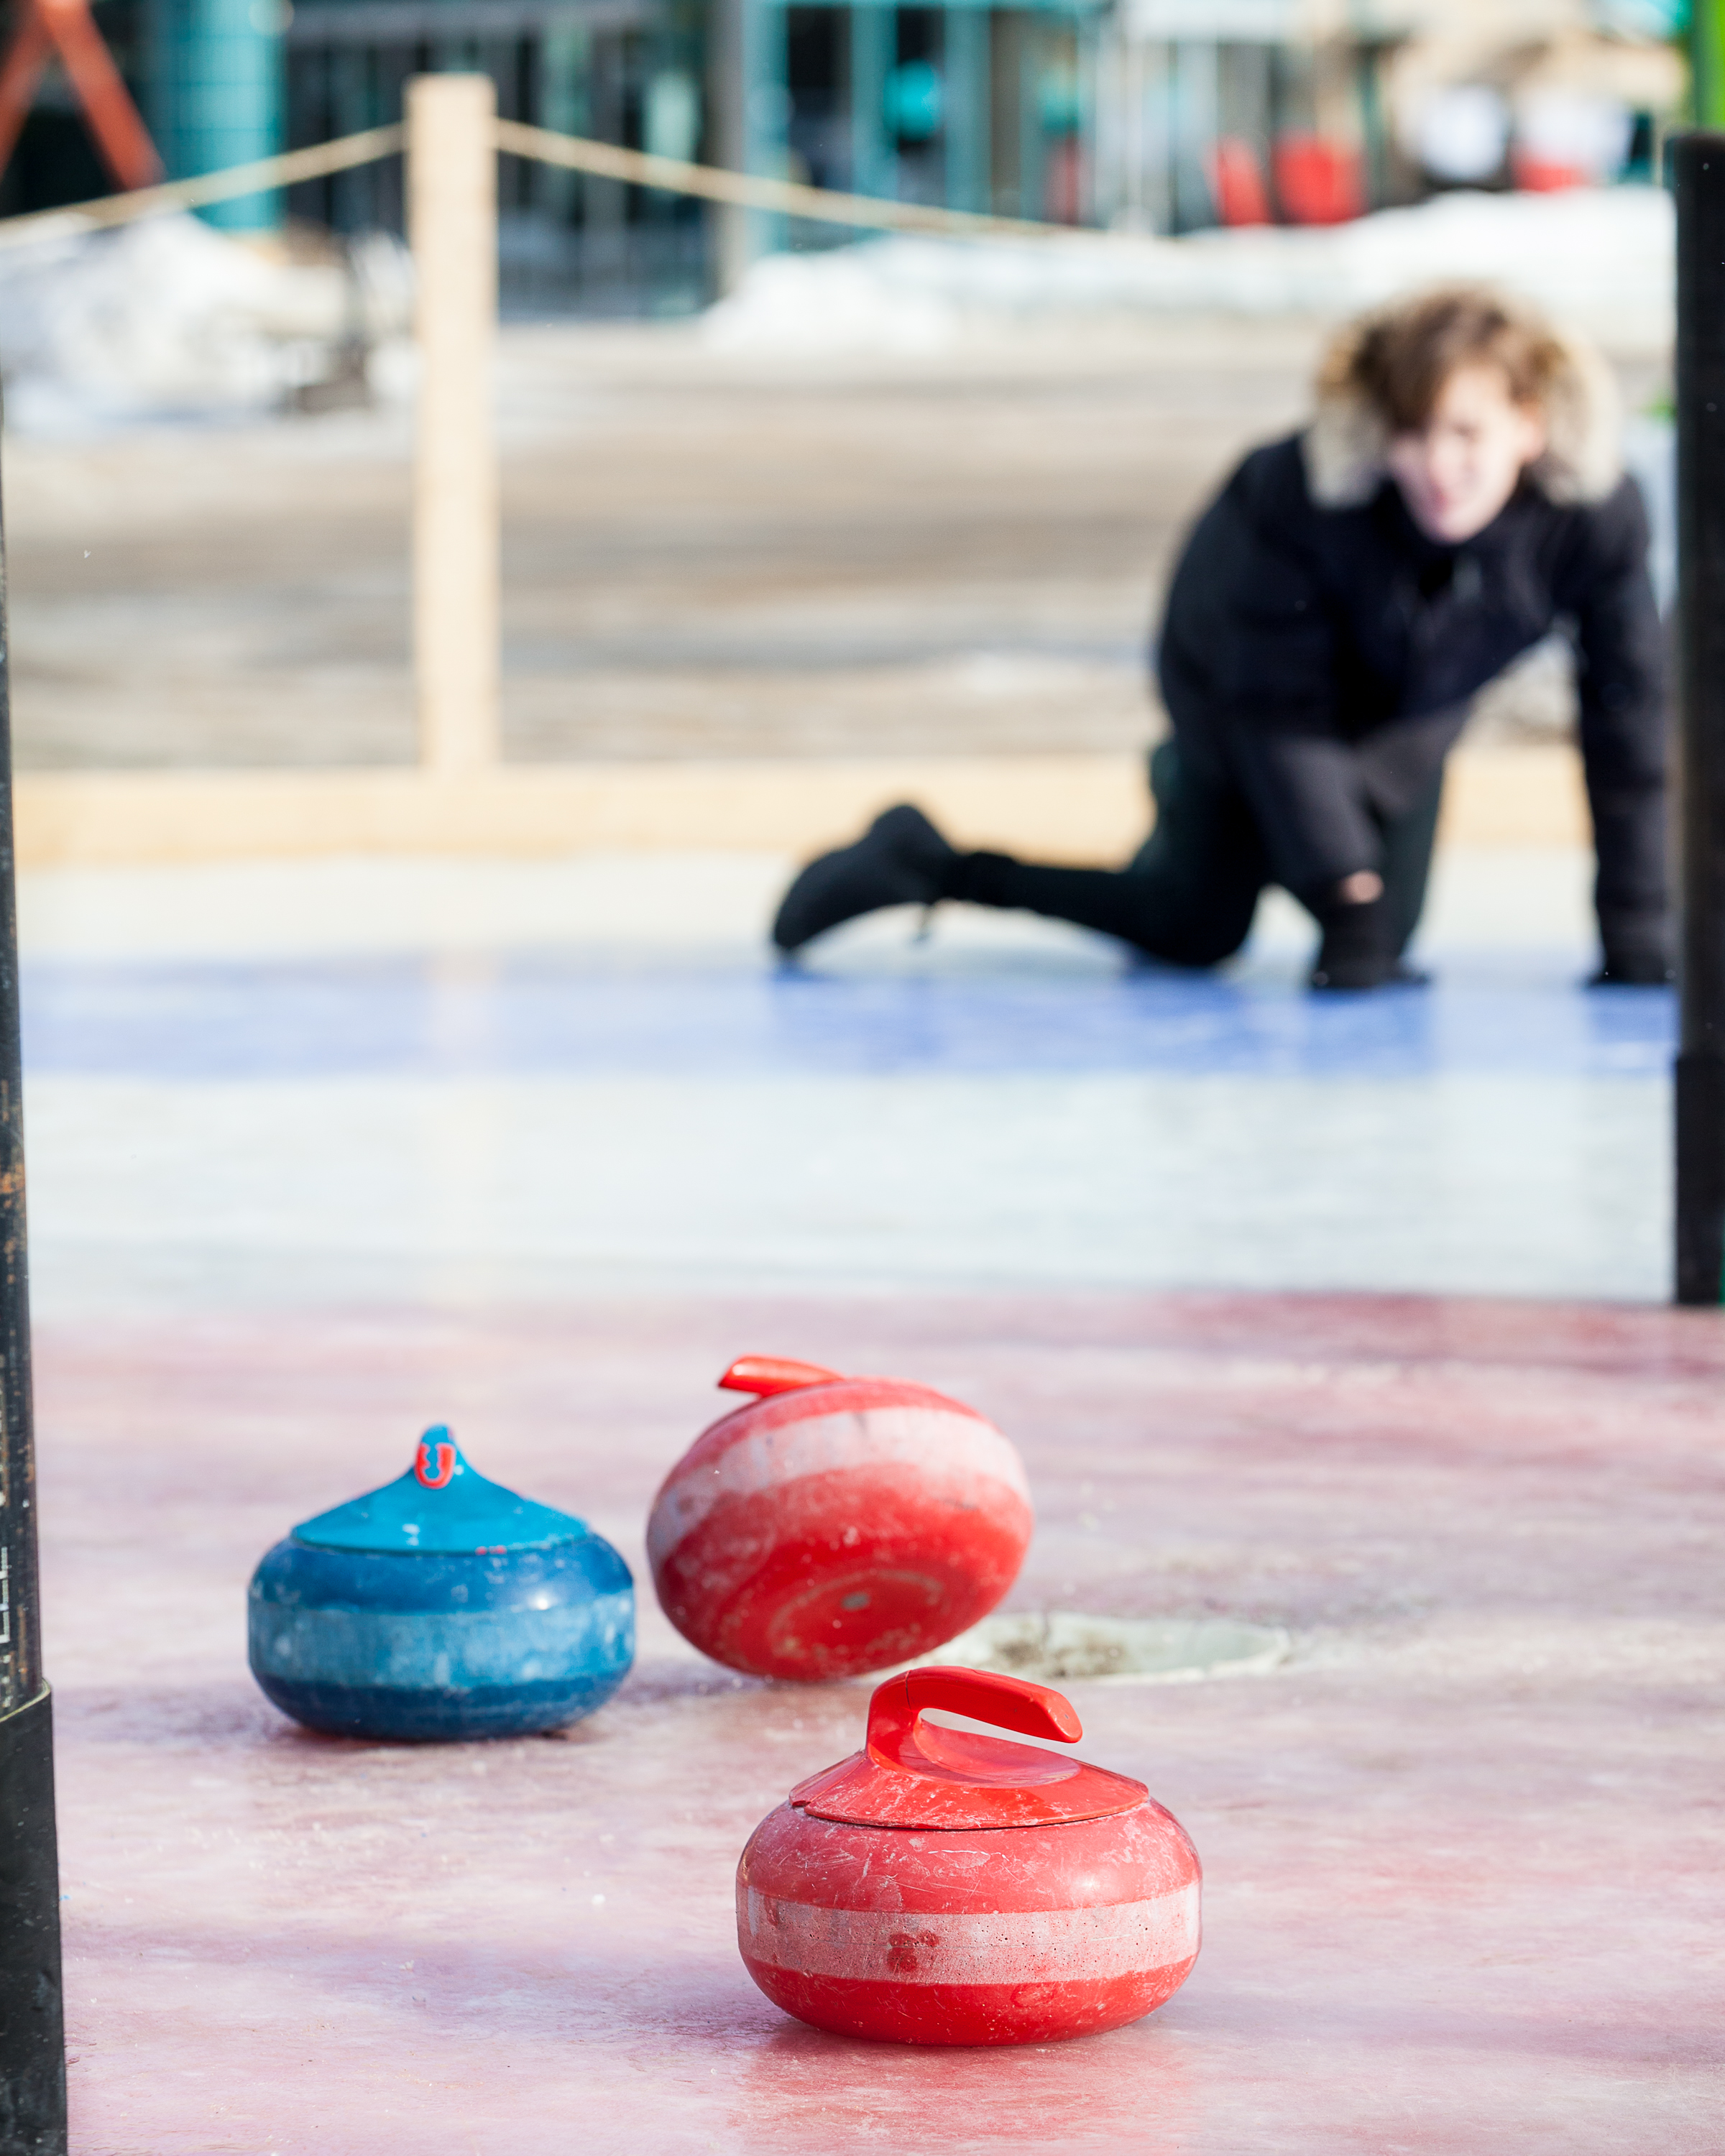 Crokicurl_02_photo by Station Point Photographic.jpg